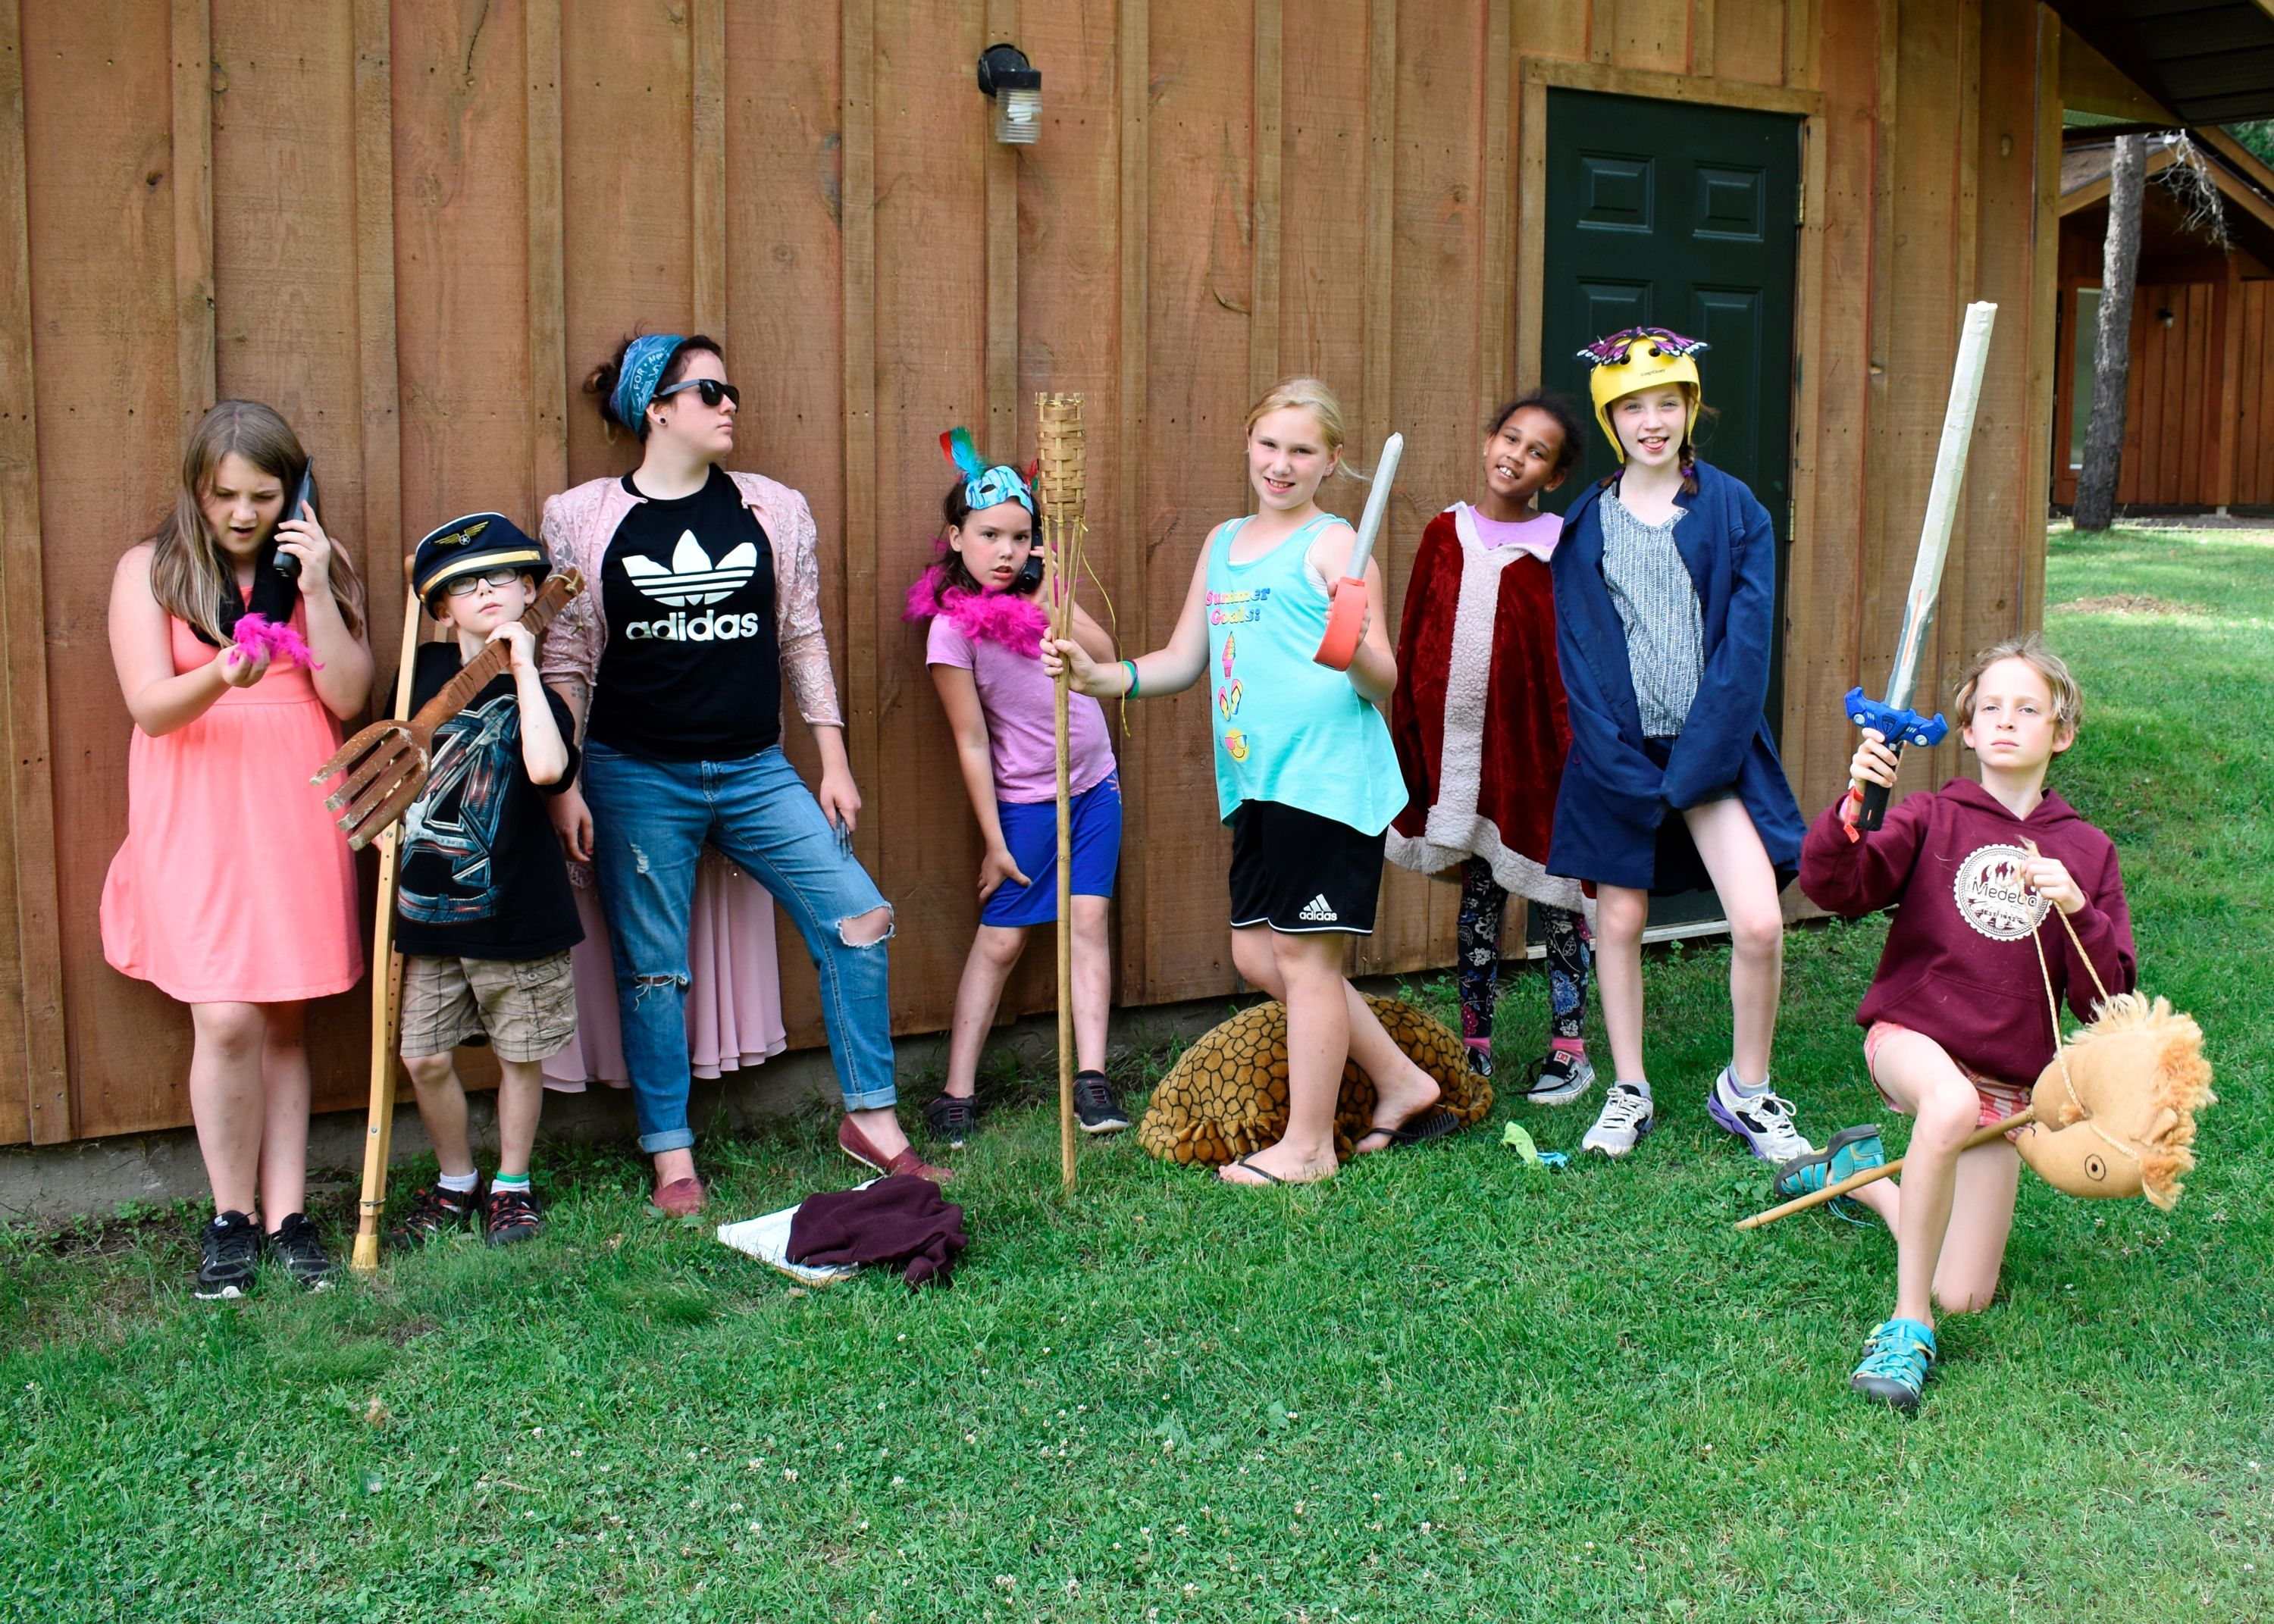 Campers dressed up for drama activity at christian adventure summer camp in Haliburton, Ontario